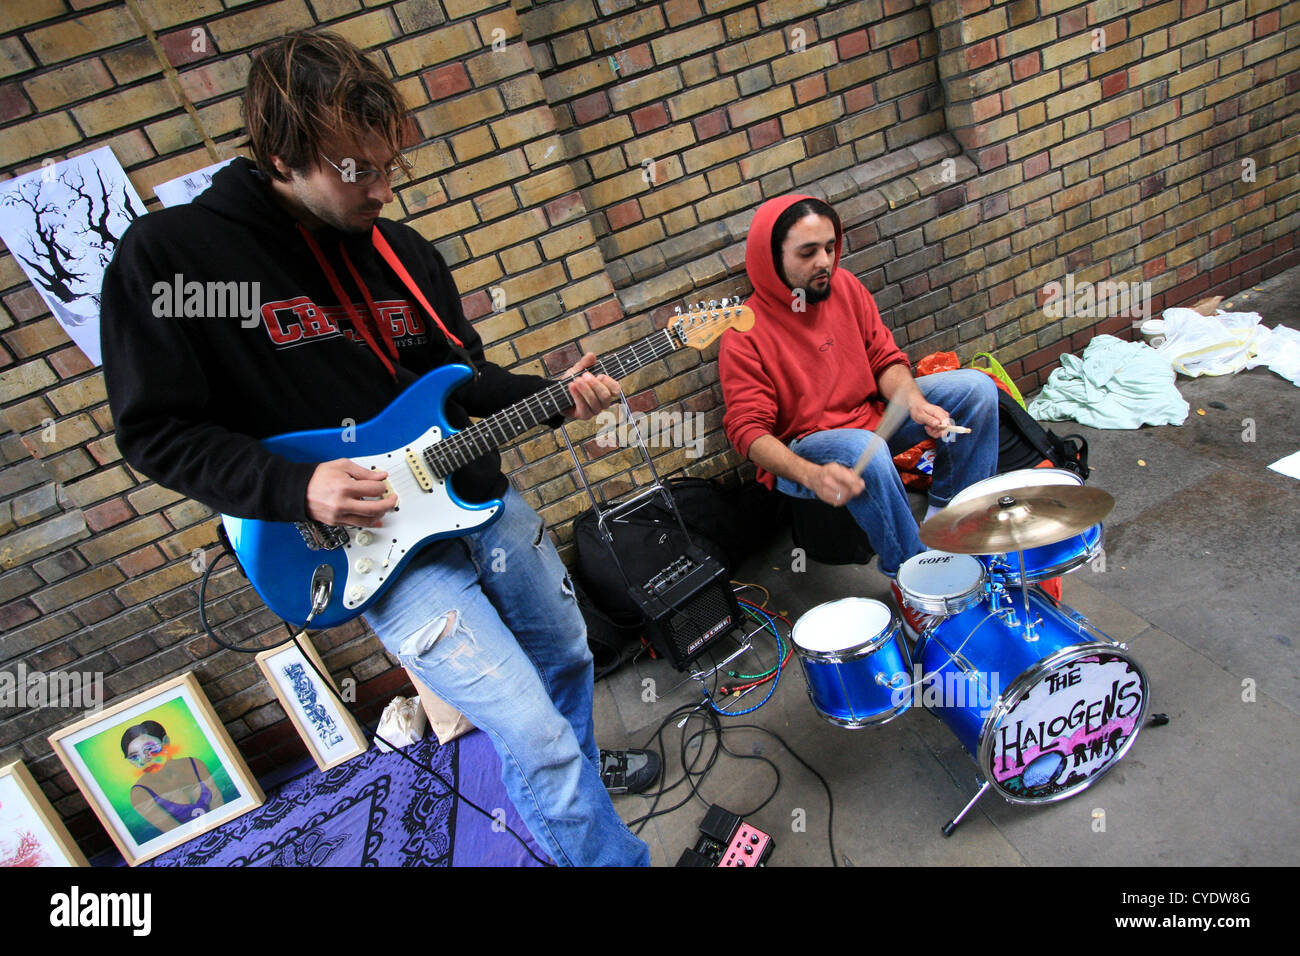 Buskers playing on a street, Brick Lane, London Stock Photo